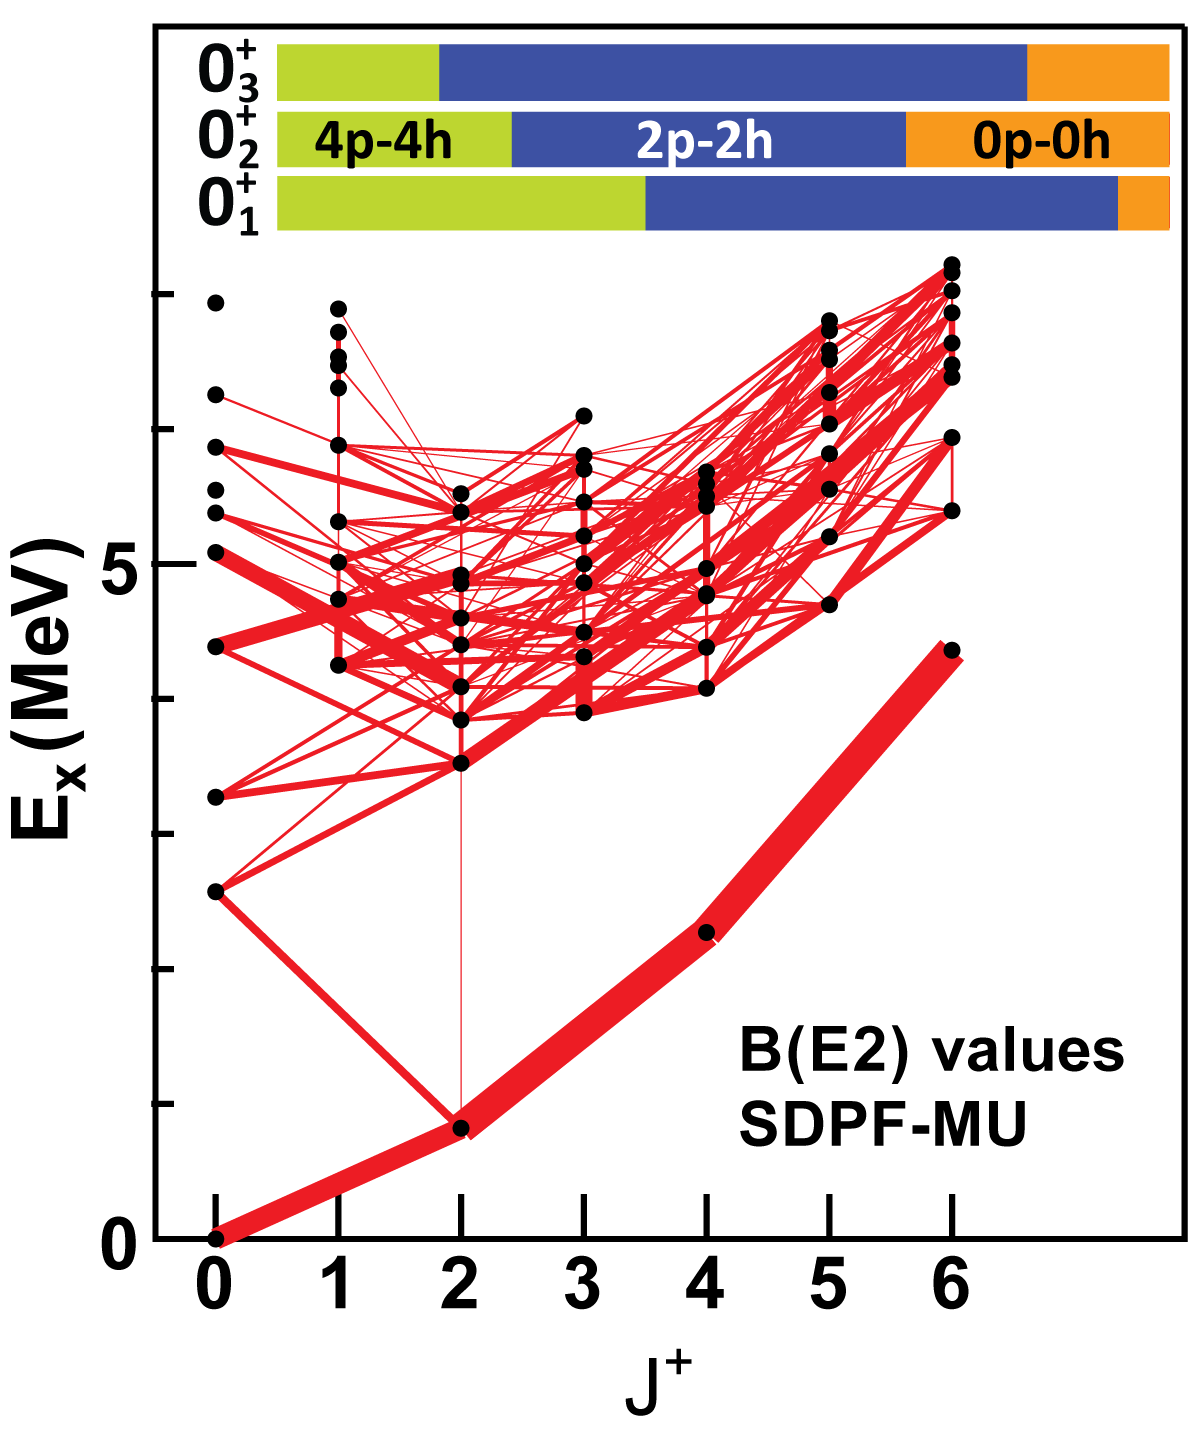 hight resolution of figure 1 a network of e2 transitions connecting various states of 42si that is used to examine the differences in the shell model implementations used